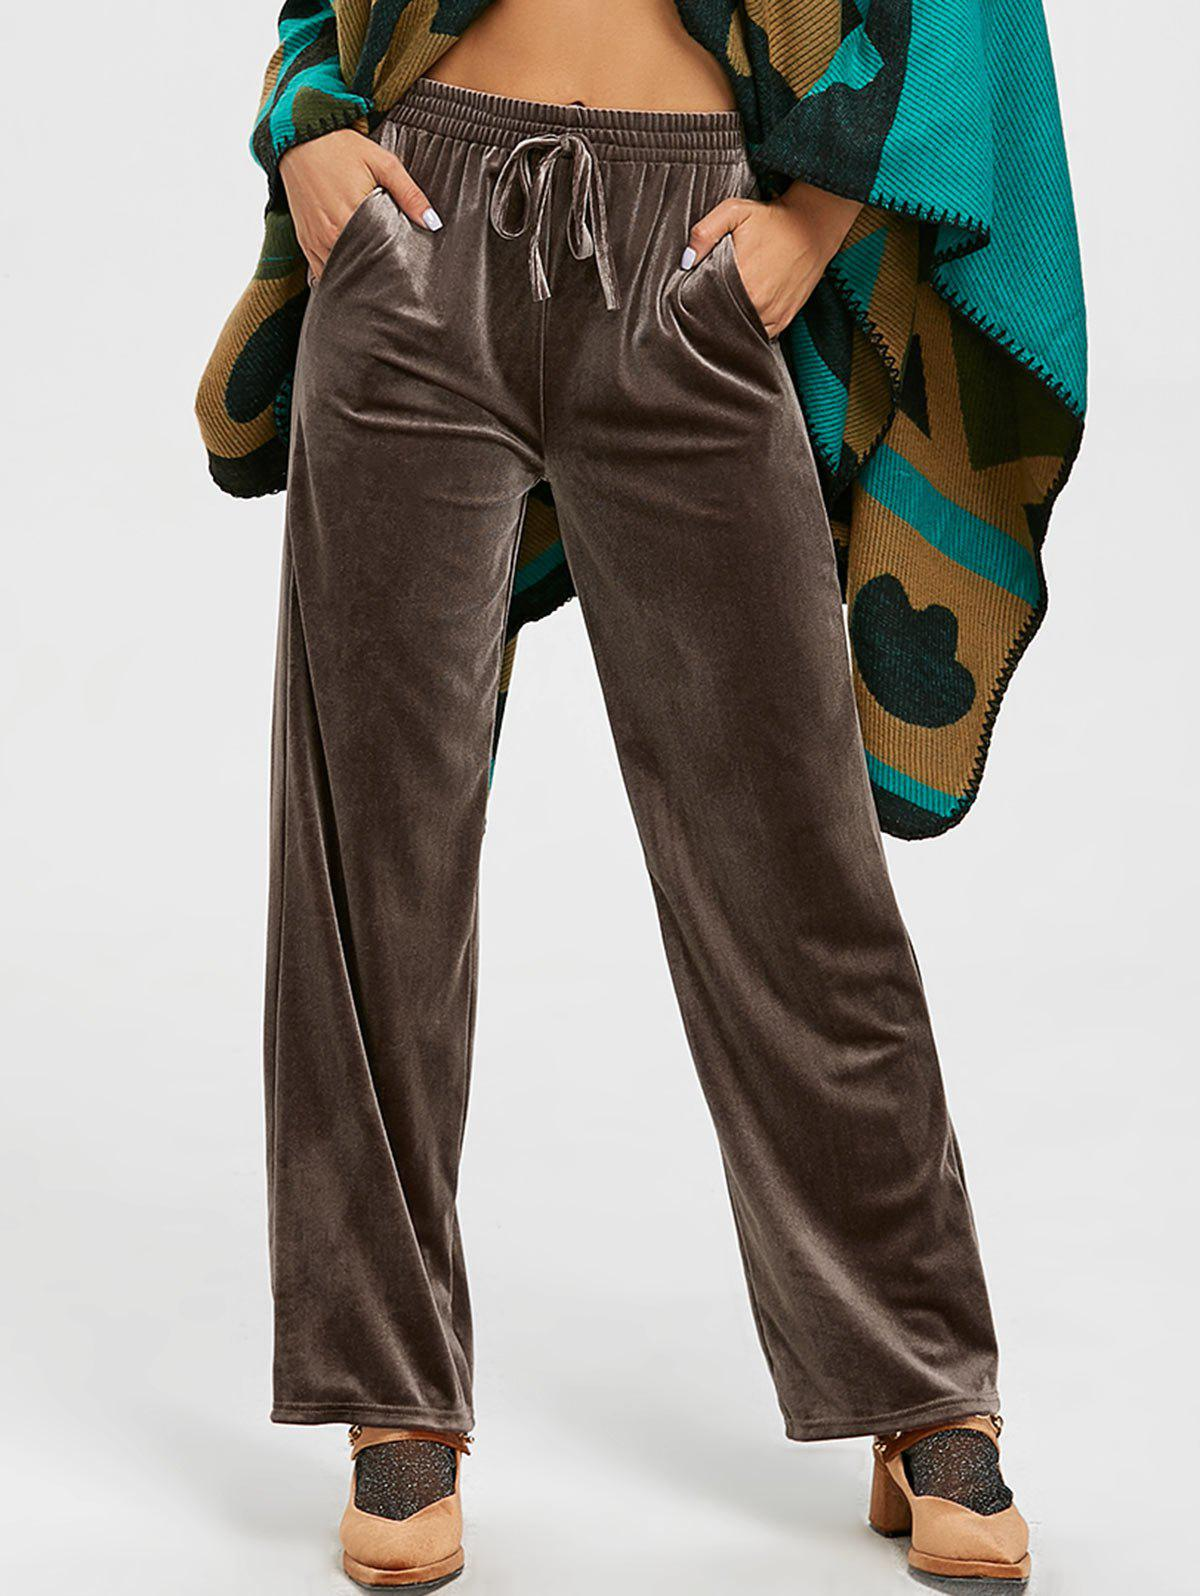 Velvet High Waisted Wide Leg Pants - COFFEE S